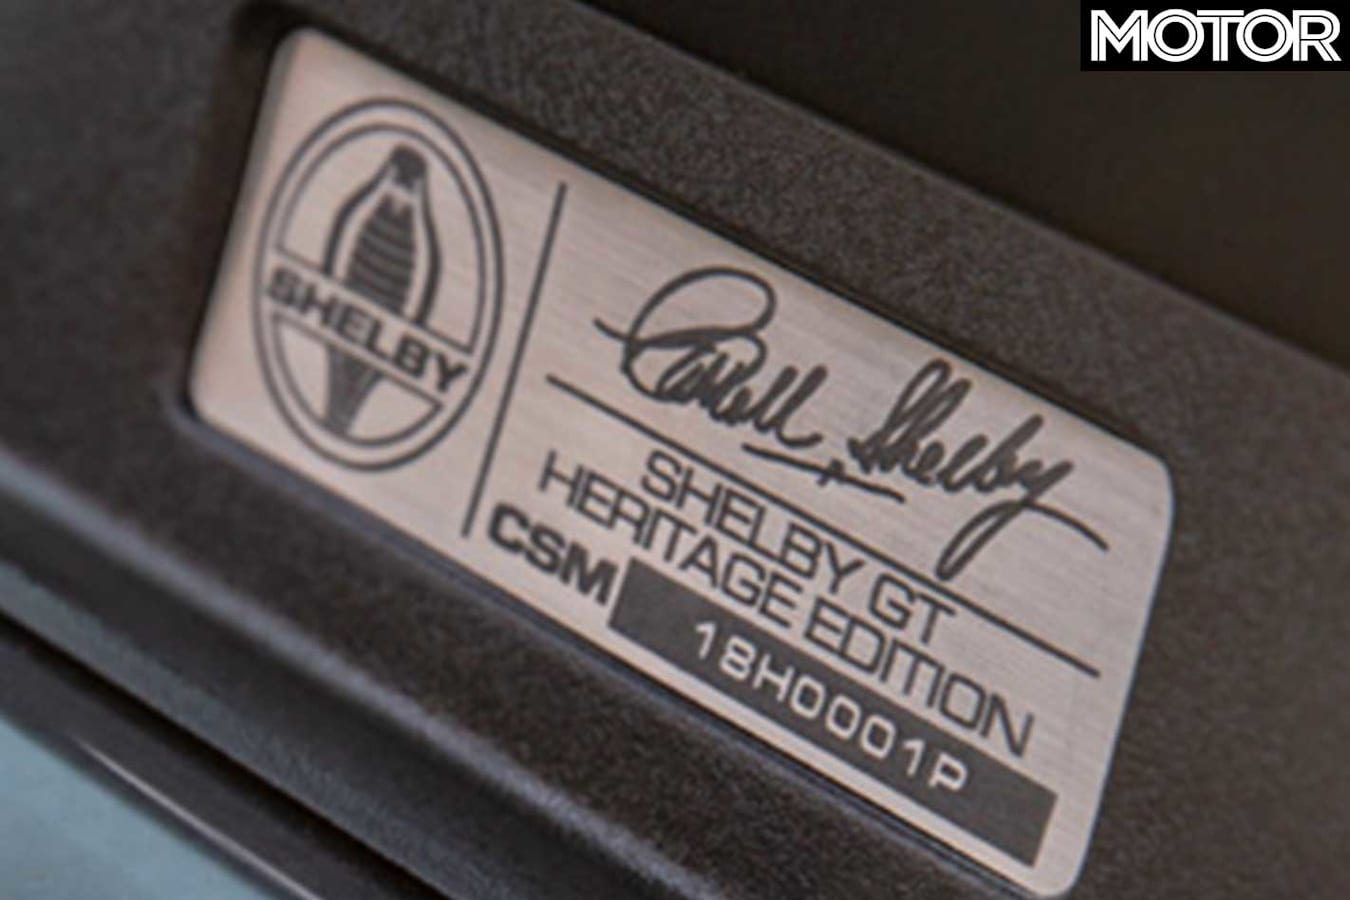 2019 Shelby Mustang GT Heritage Edition Build Plate Jpg